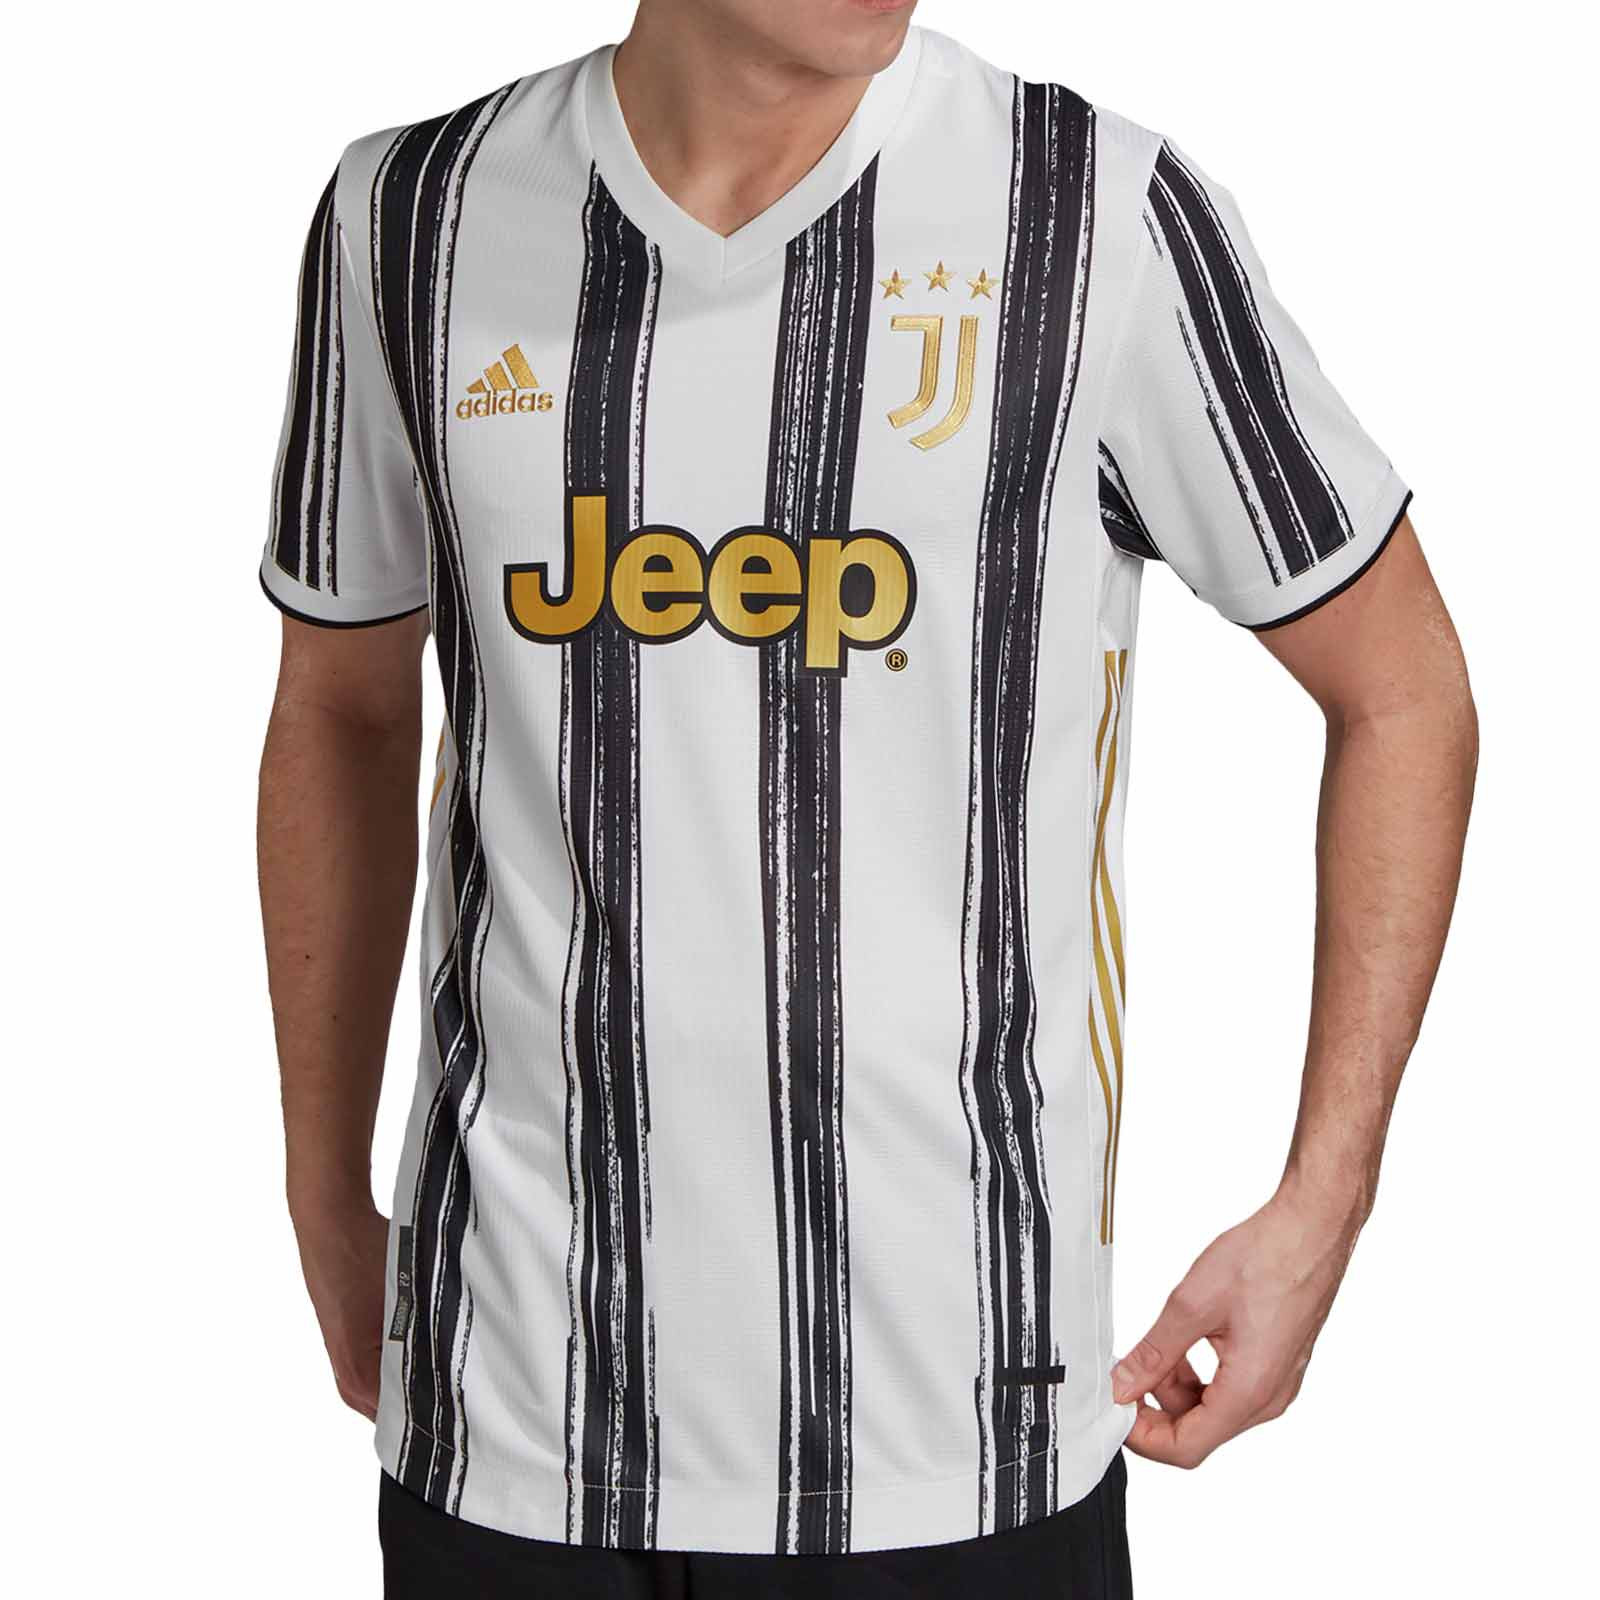 camiseta adidas juventus 2020 2021 authentic futbolmania camiseta adidas juventus 2020 2021 authentic